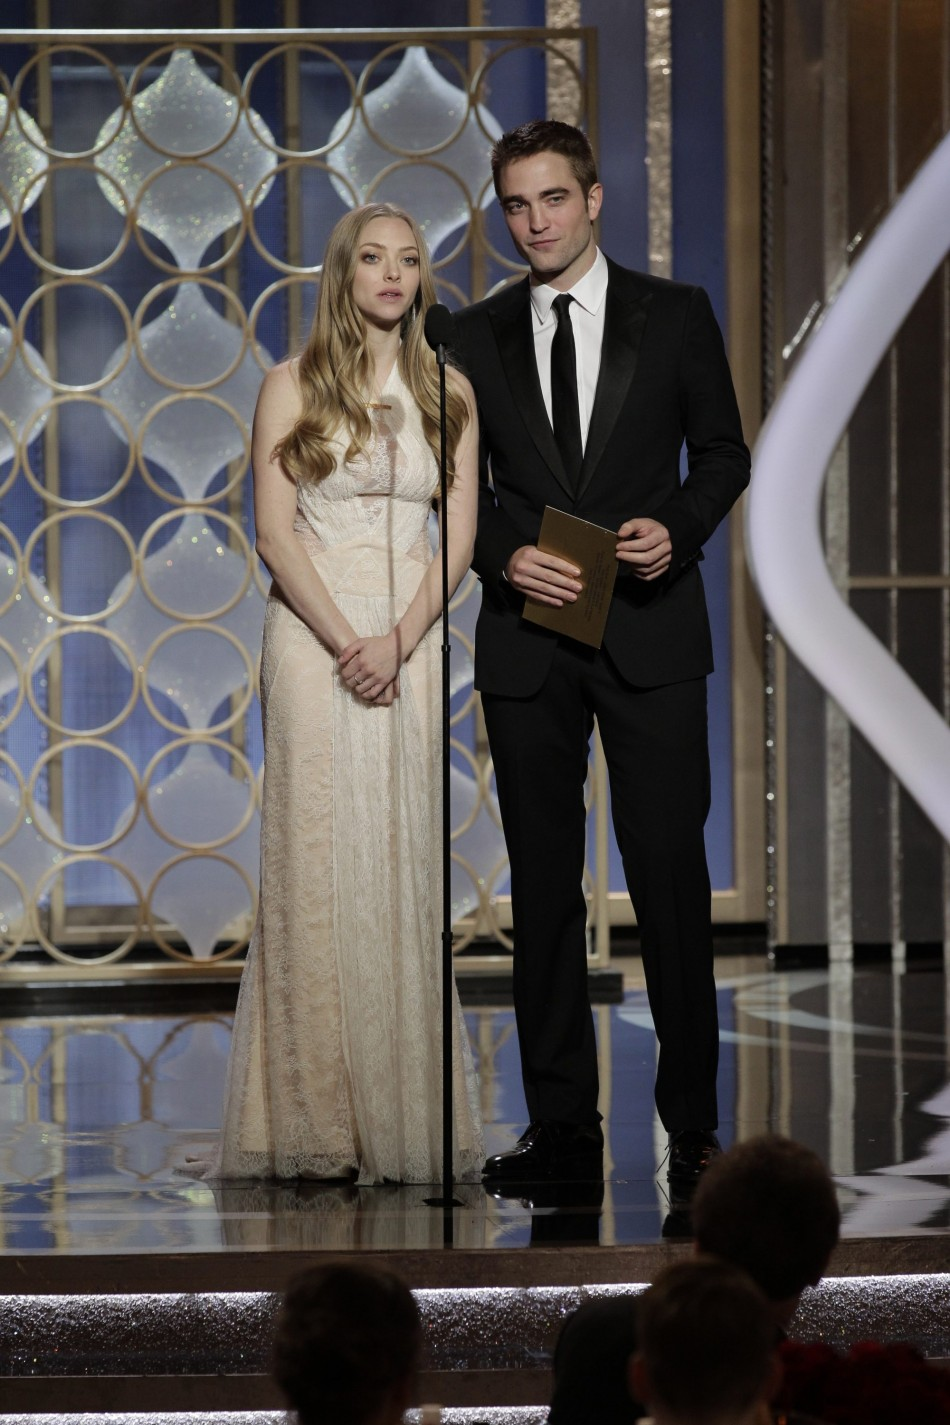 Presenters Amanda Seyfried and Robert Pattinson on stage at the Golden Globe Awards in Beverly Hills